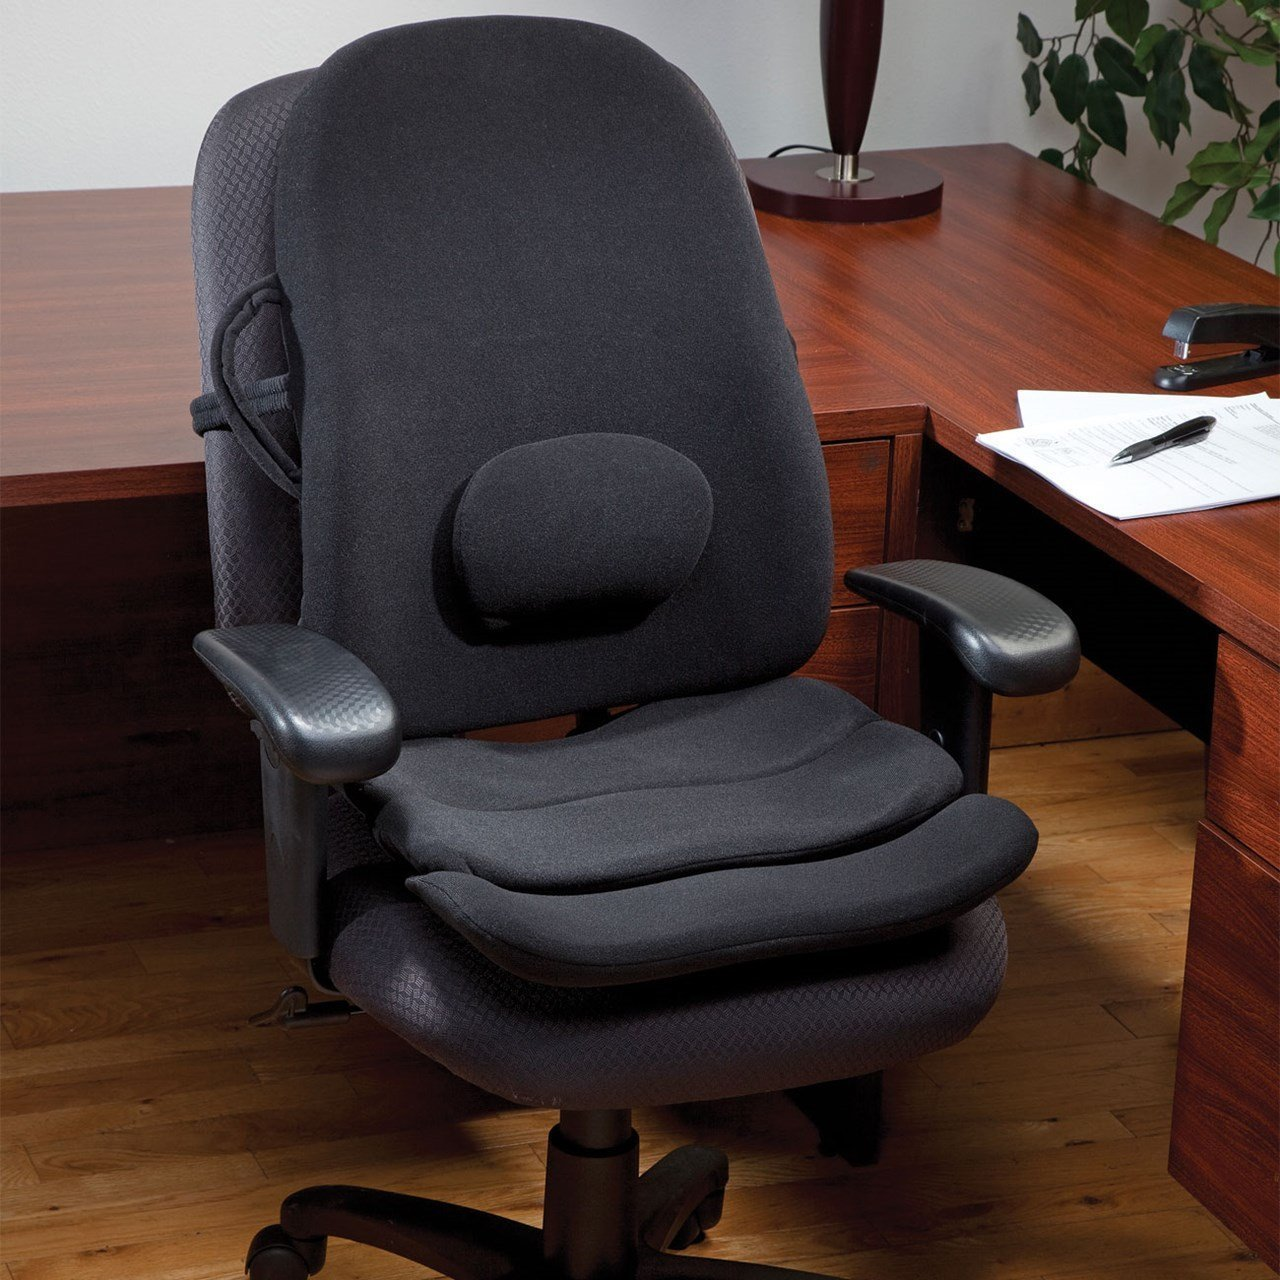 Office Chair Seat Covers Seat Cushions For Back Problems Home Furniture Design